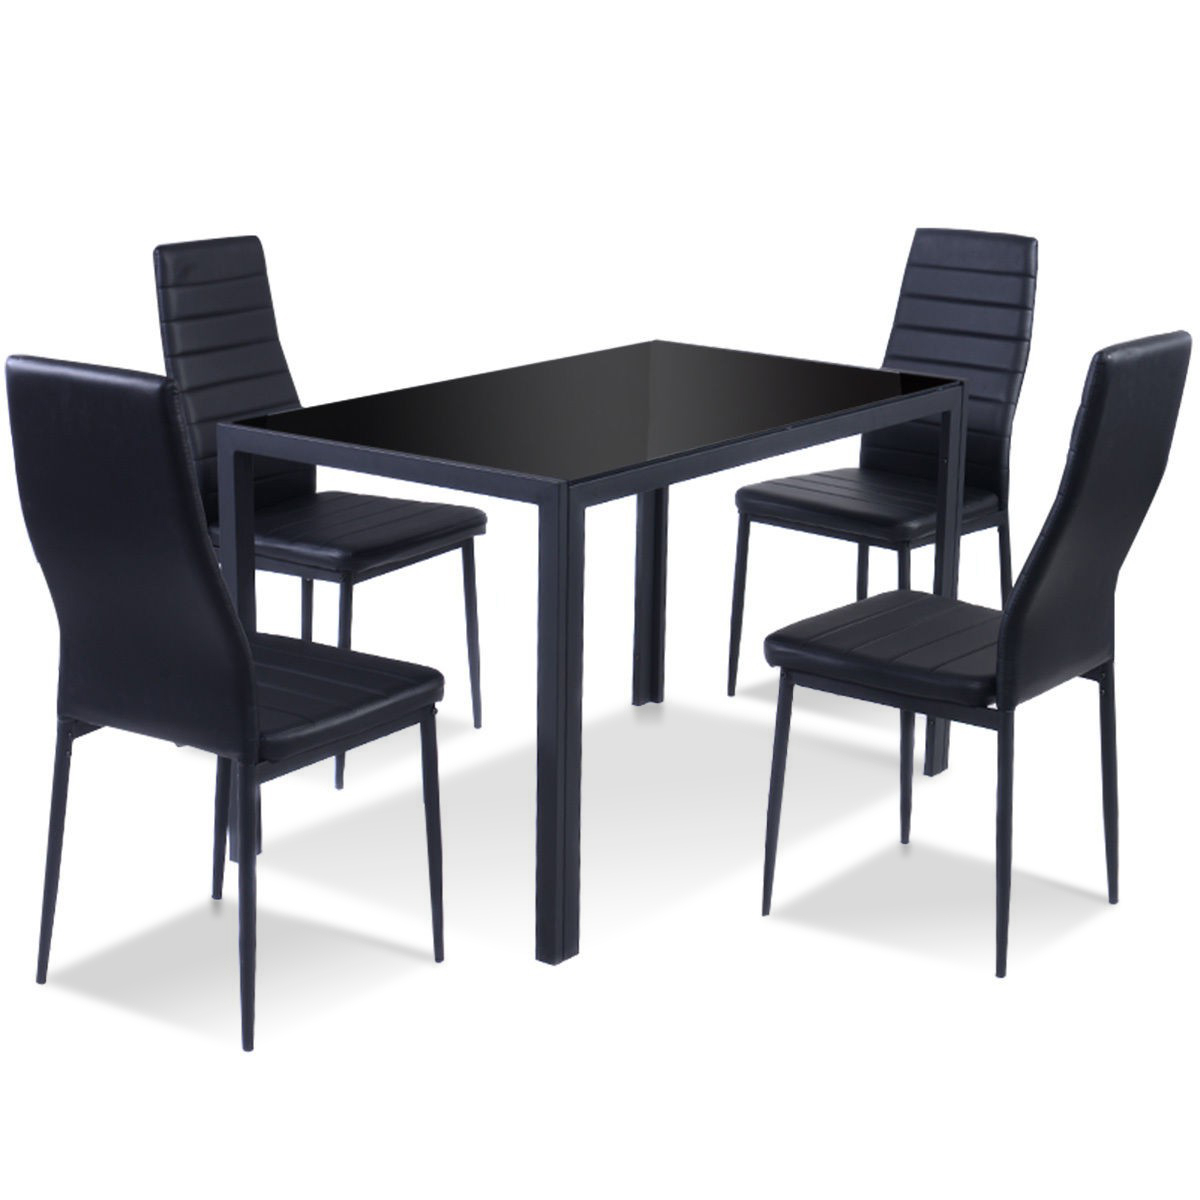 Partin 3 Piece Dining Sets For Most Up To Date 5 Pieces Metal Frame And Glass Tabletop Dining Set (View 7 of 20)